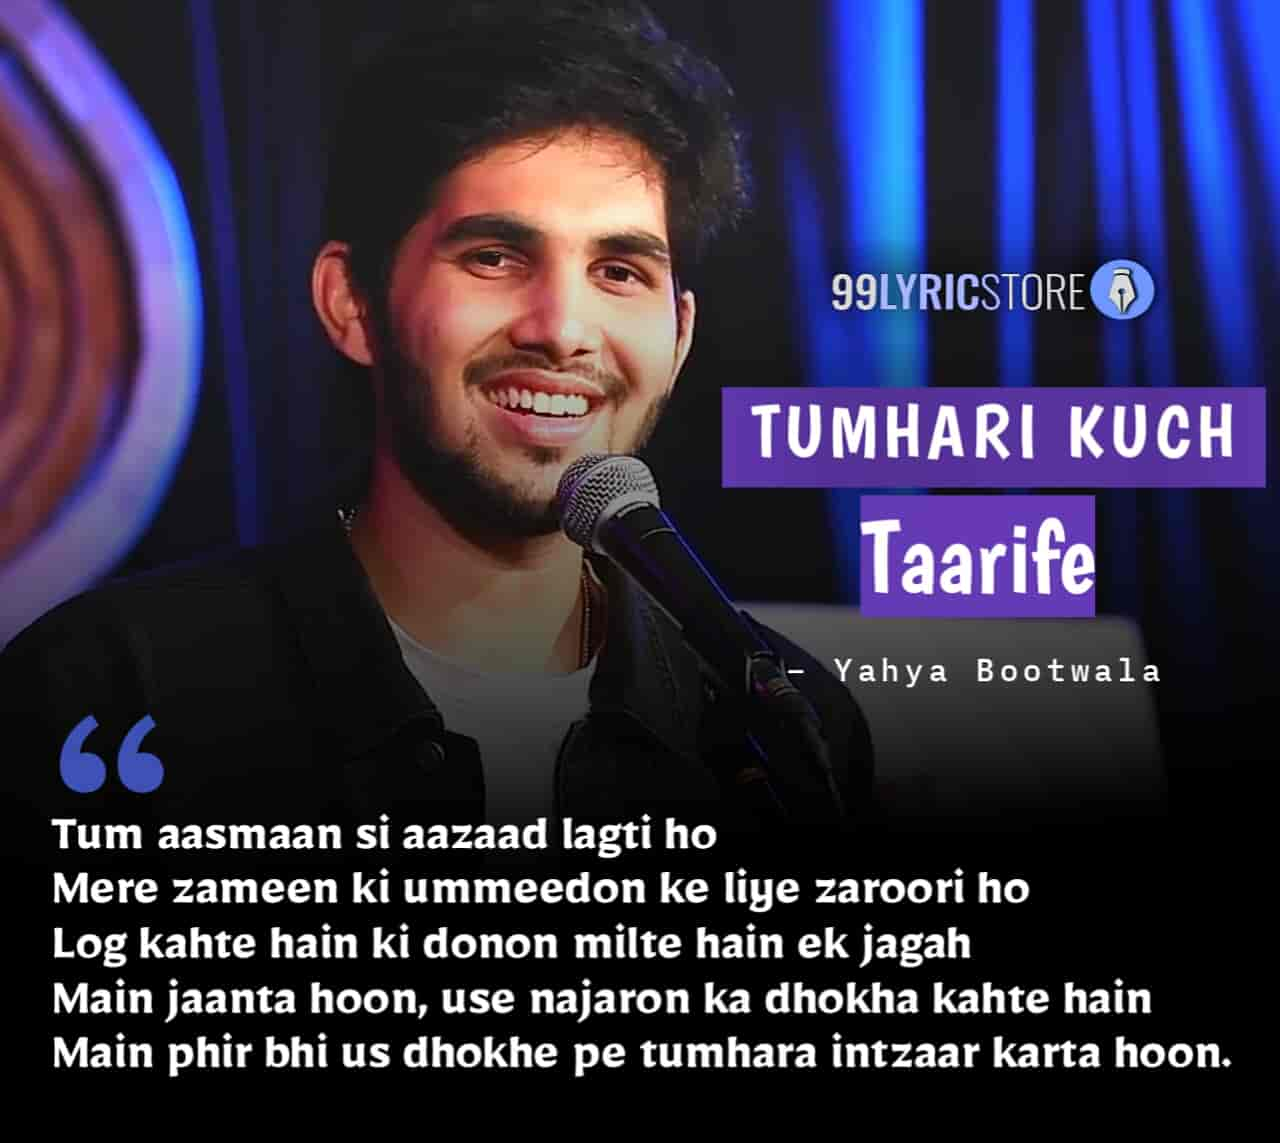 This beautiful love poetry 'Tumhari Kuch Taarife' has written and performed by very young talented poet Yahya Bootwala.